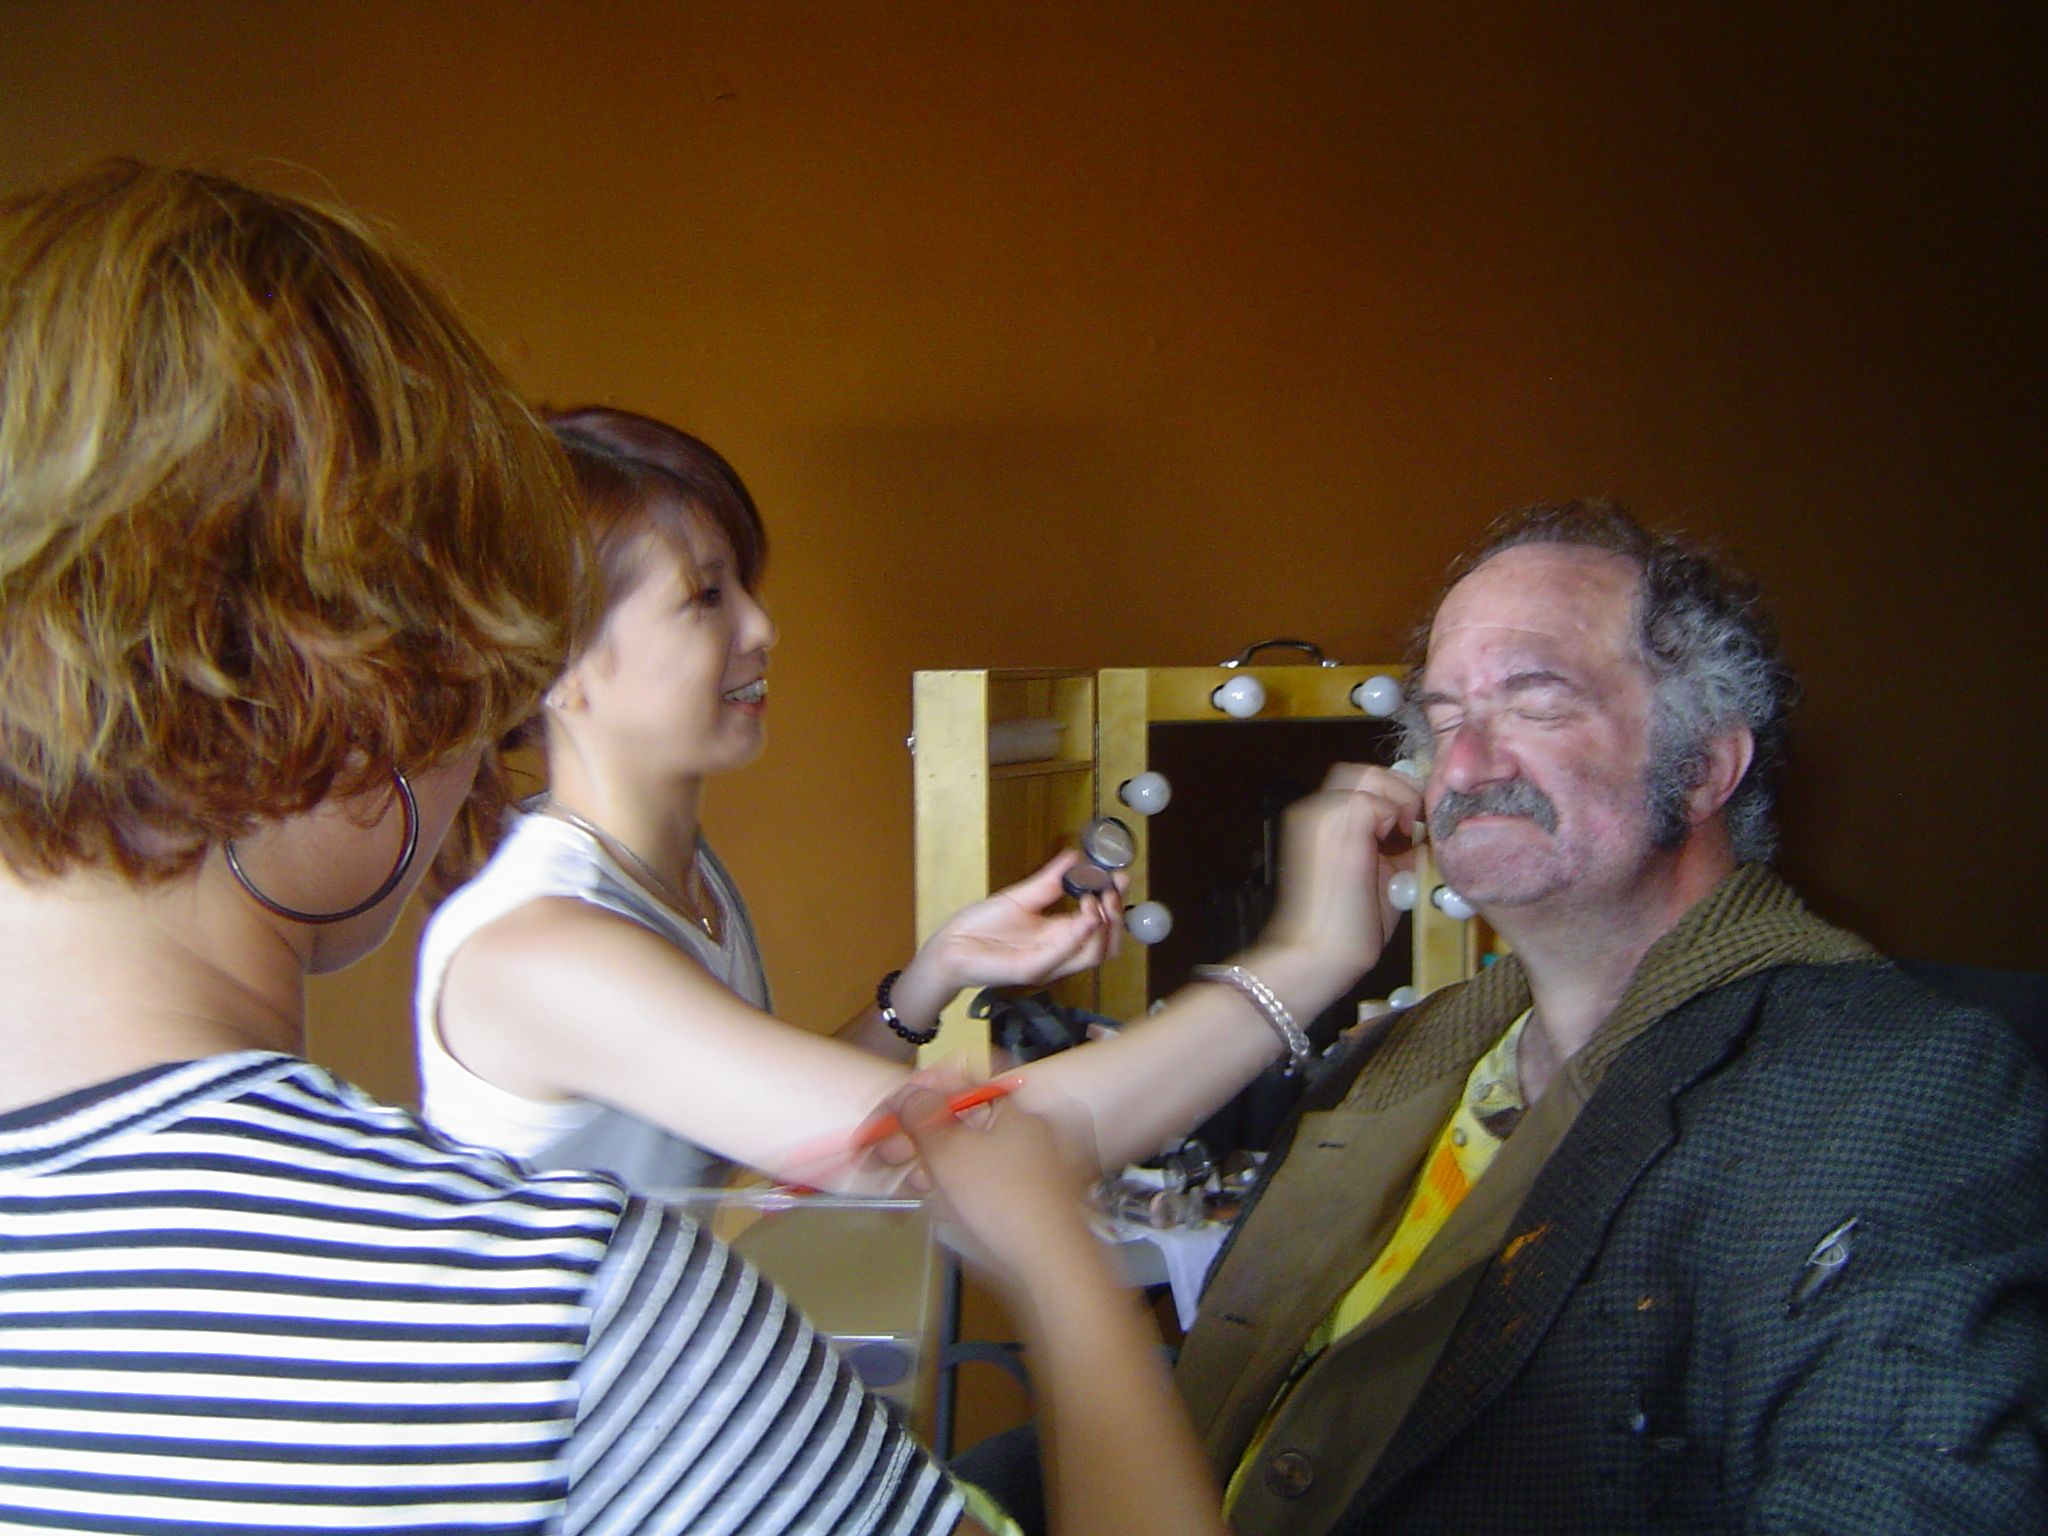 Geoffrey Gould being make-up as Homeless Man for We Are The In Crowd music video ''Rumor Mill.''